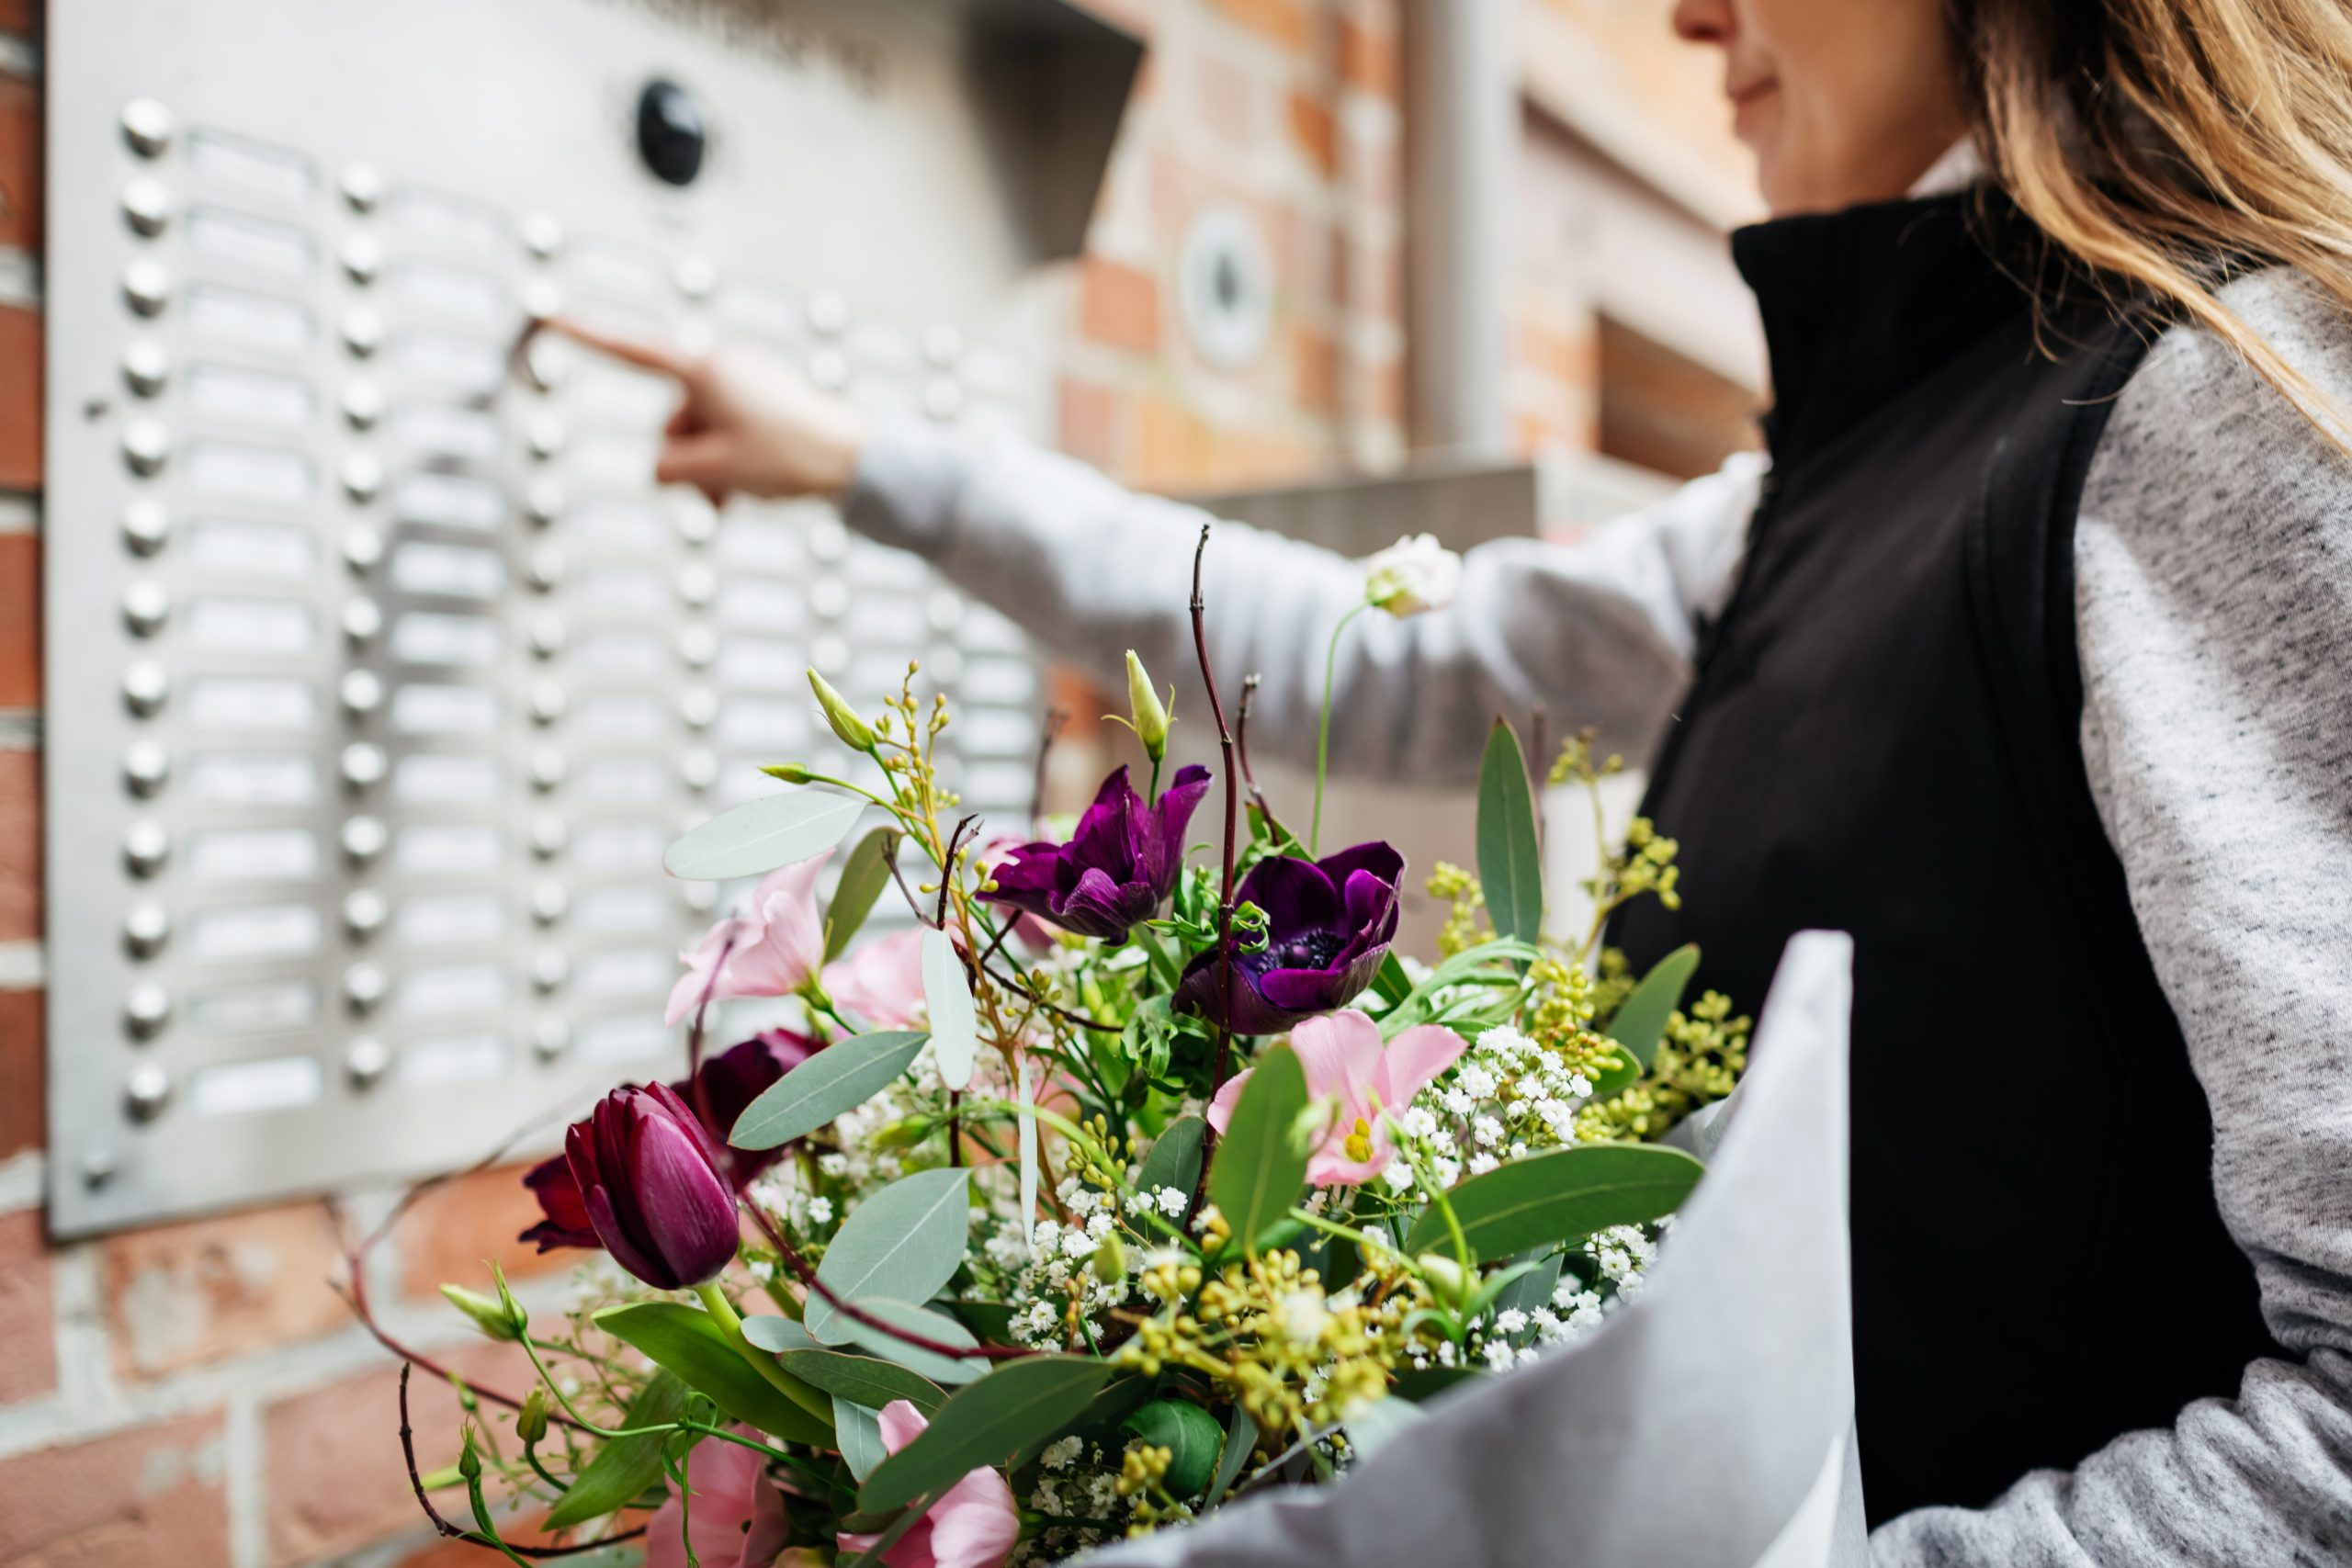 Flower delivery UK: the best flower delivery services for next day delivery  | Woman & Home